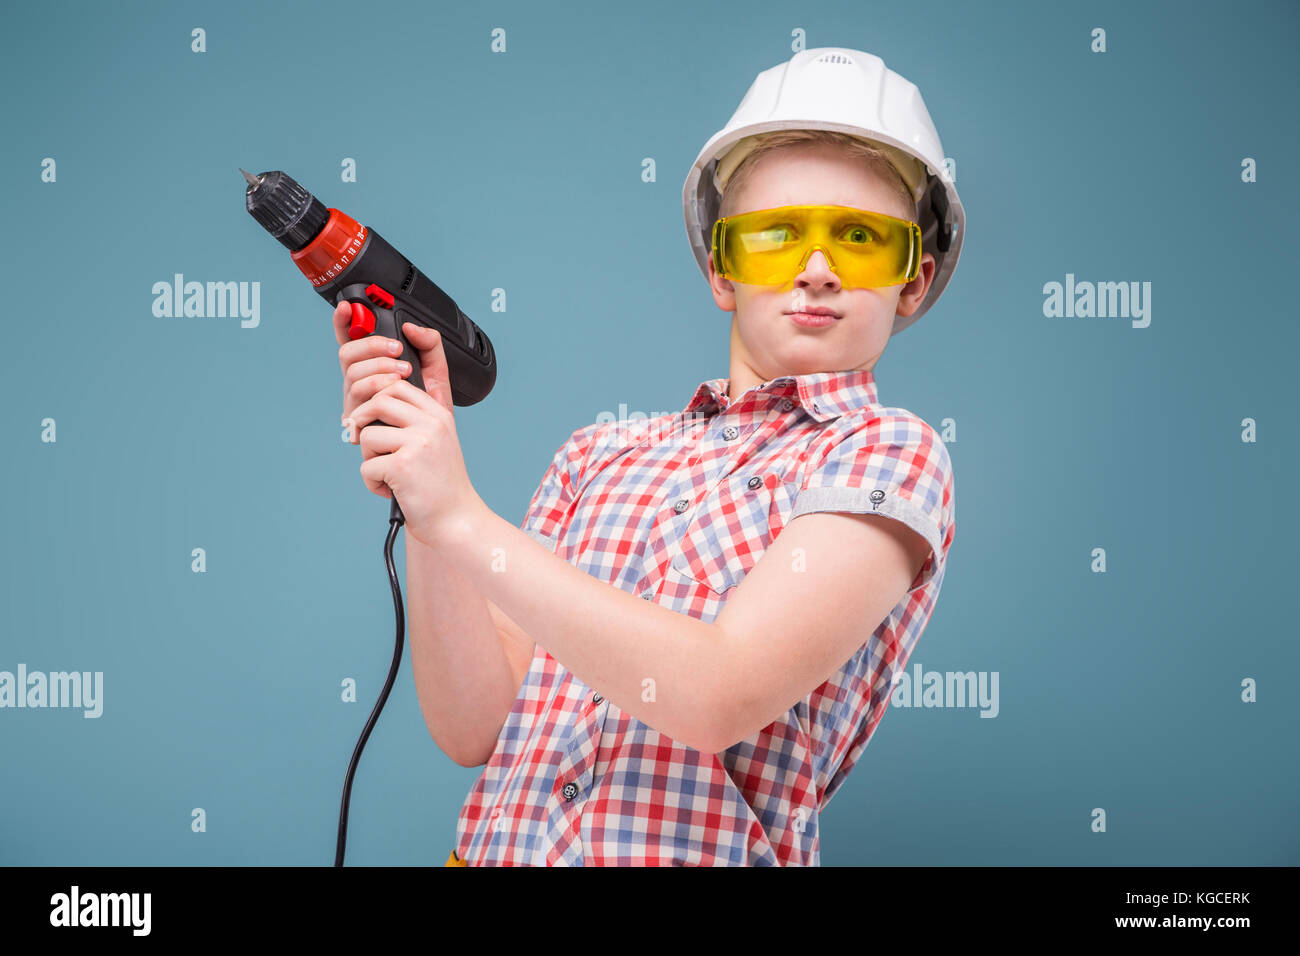 bewildered teenager with a screwdriver in the hands of uncontrollable - Stock Image